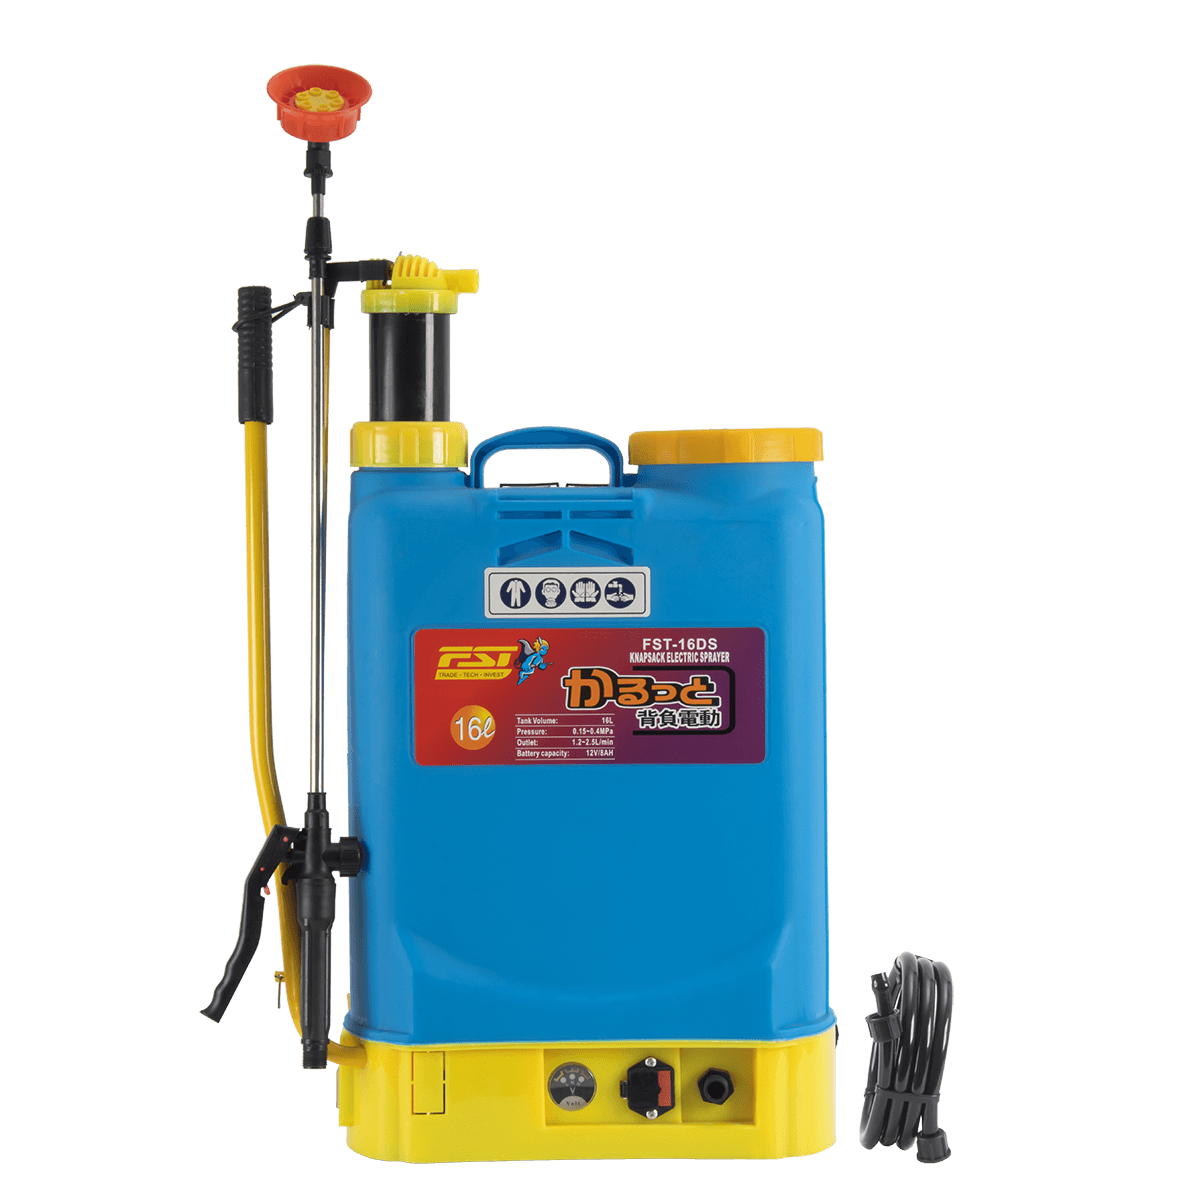 FST-16DS Knapsack Electric Sprayer